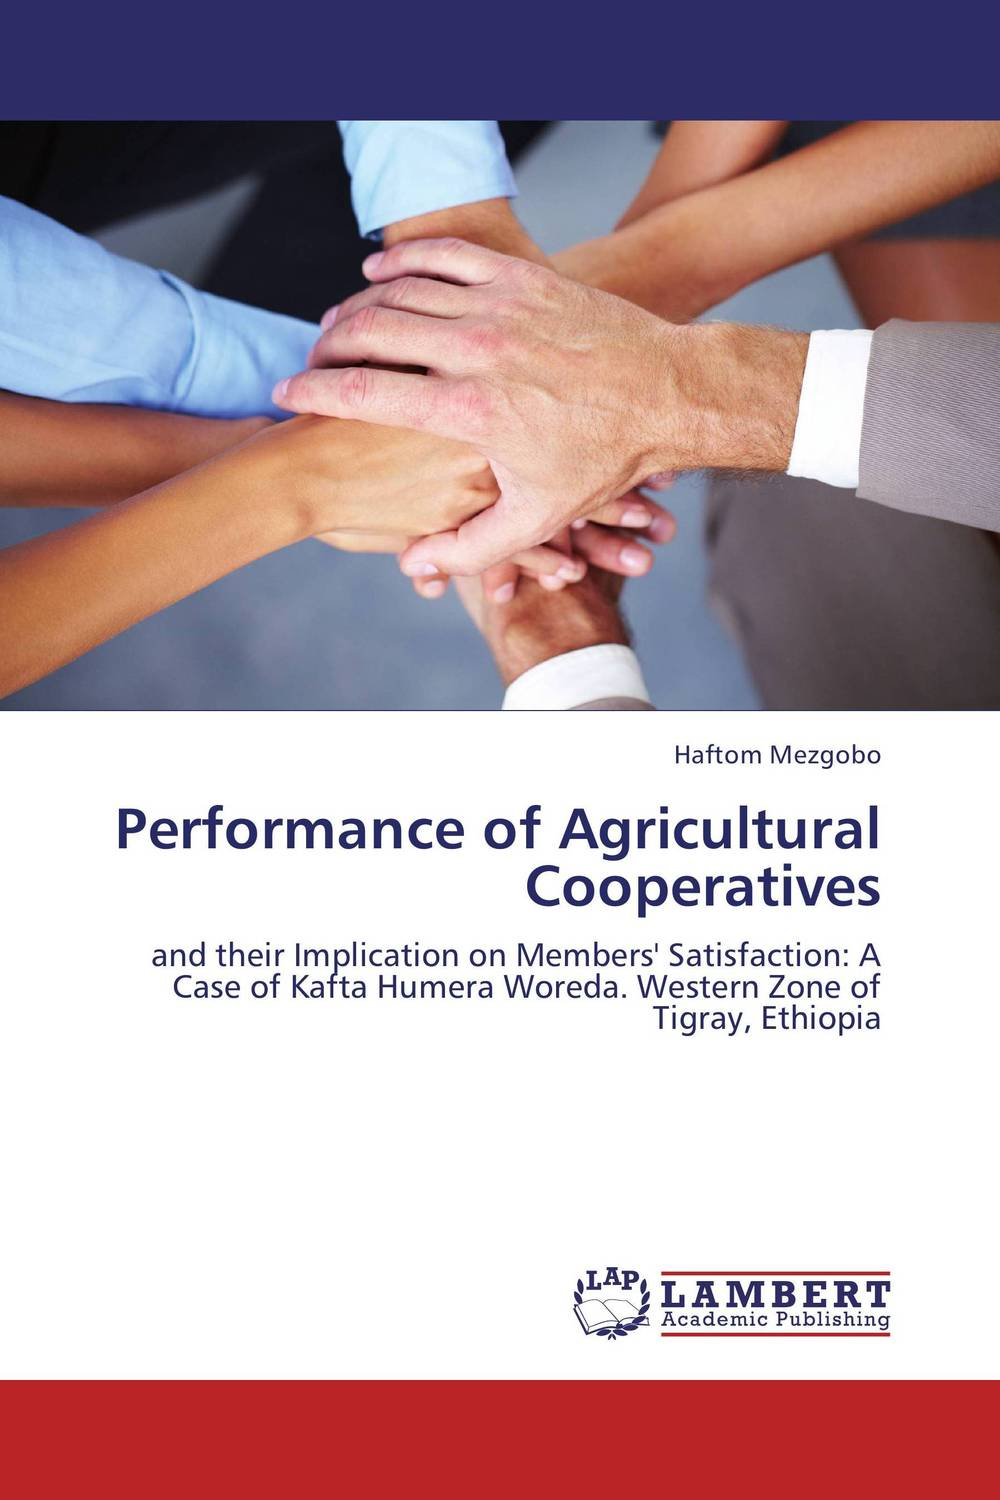 Performance of Agricultural Cooperatives financial performance analysis